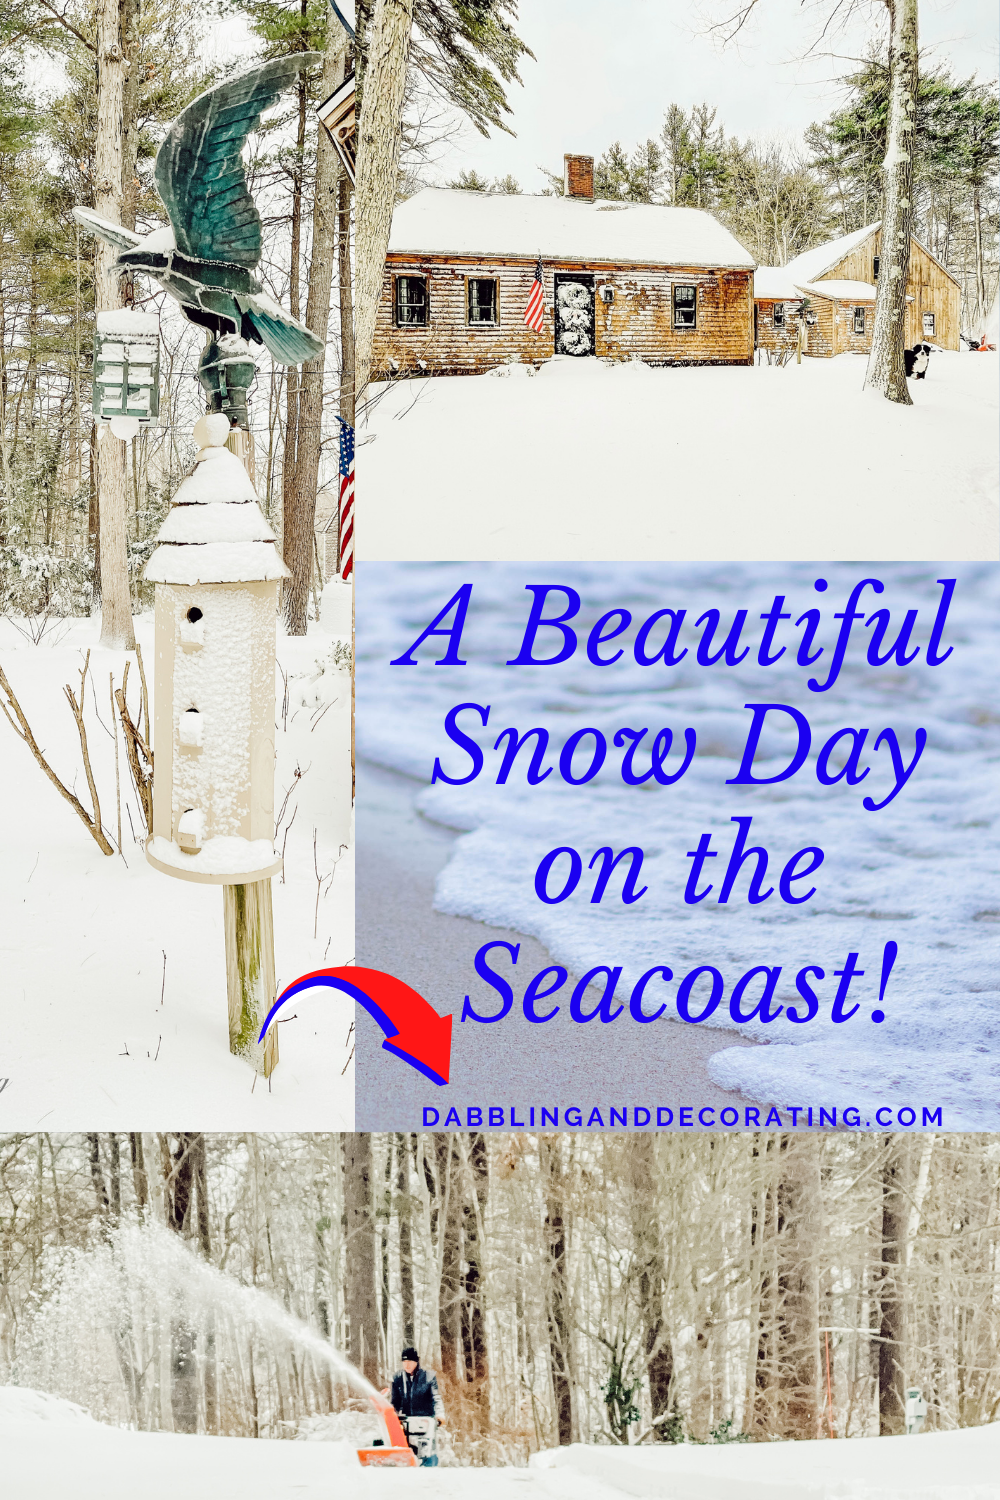 A Beautiful Snow Day on the Seacoast